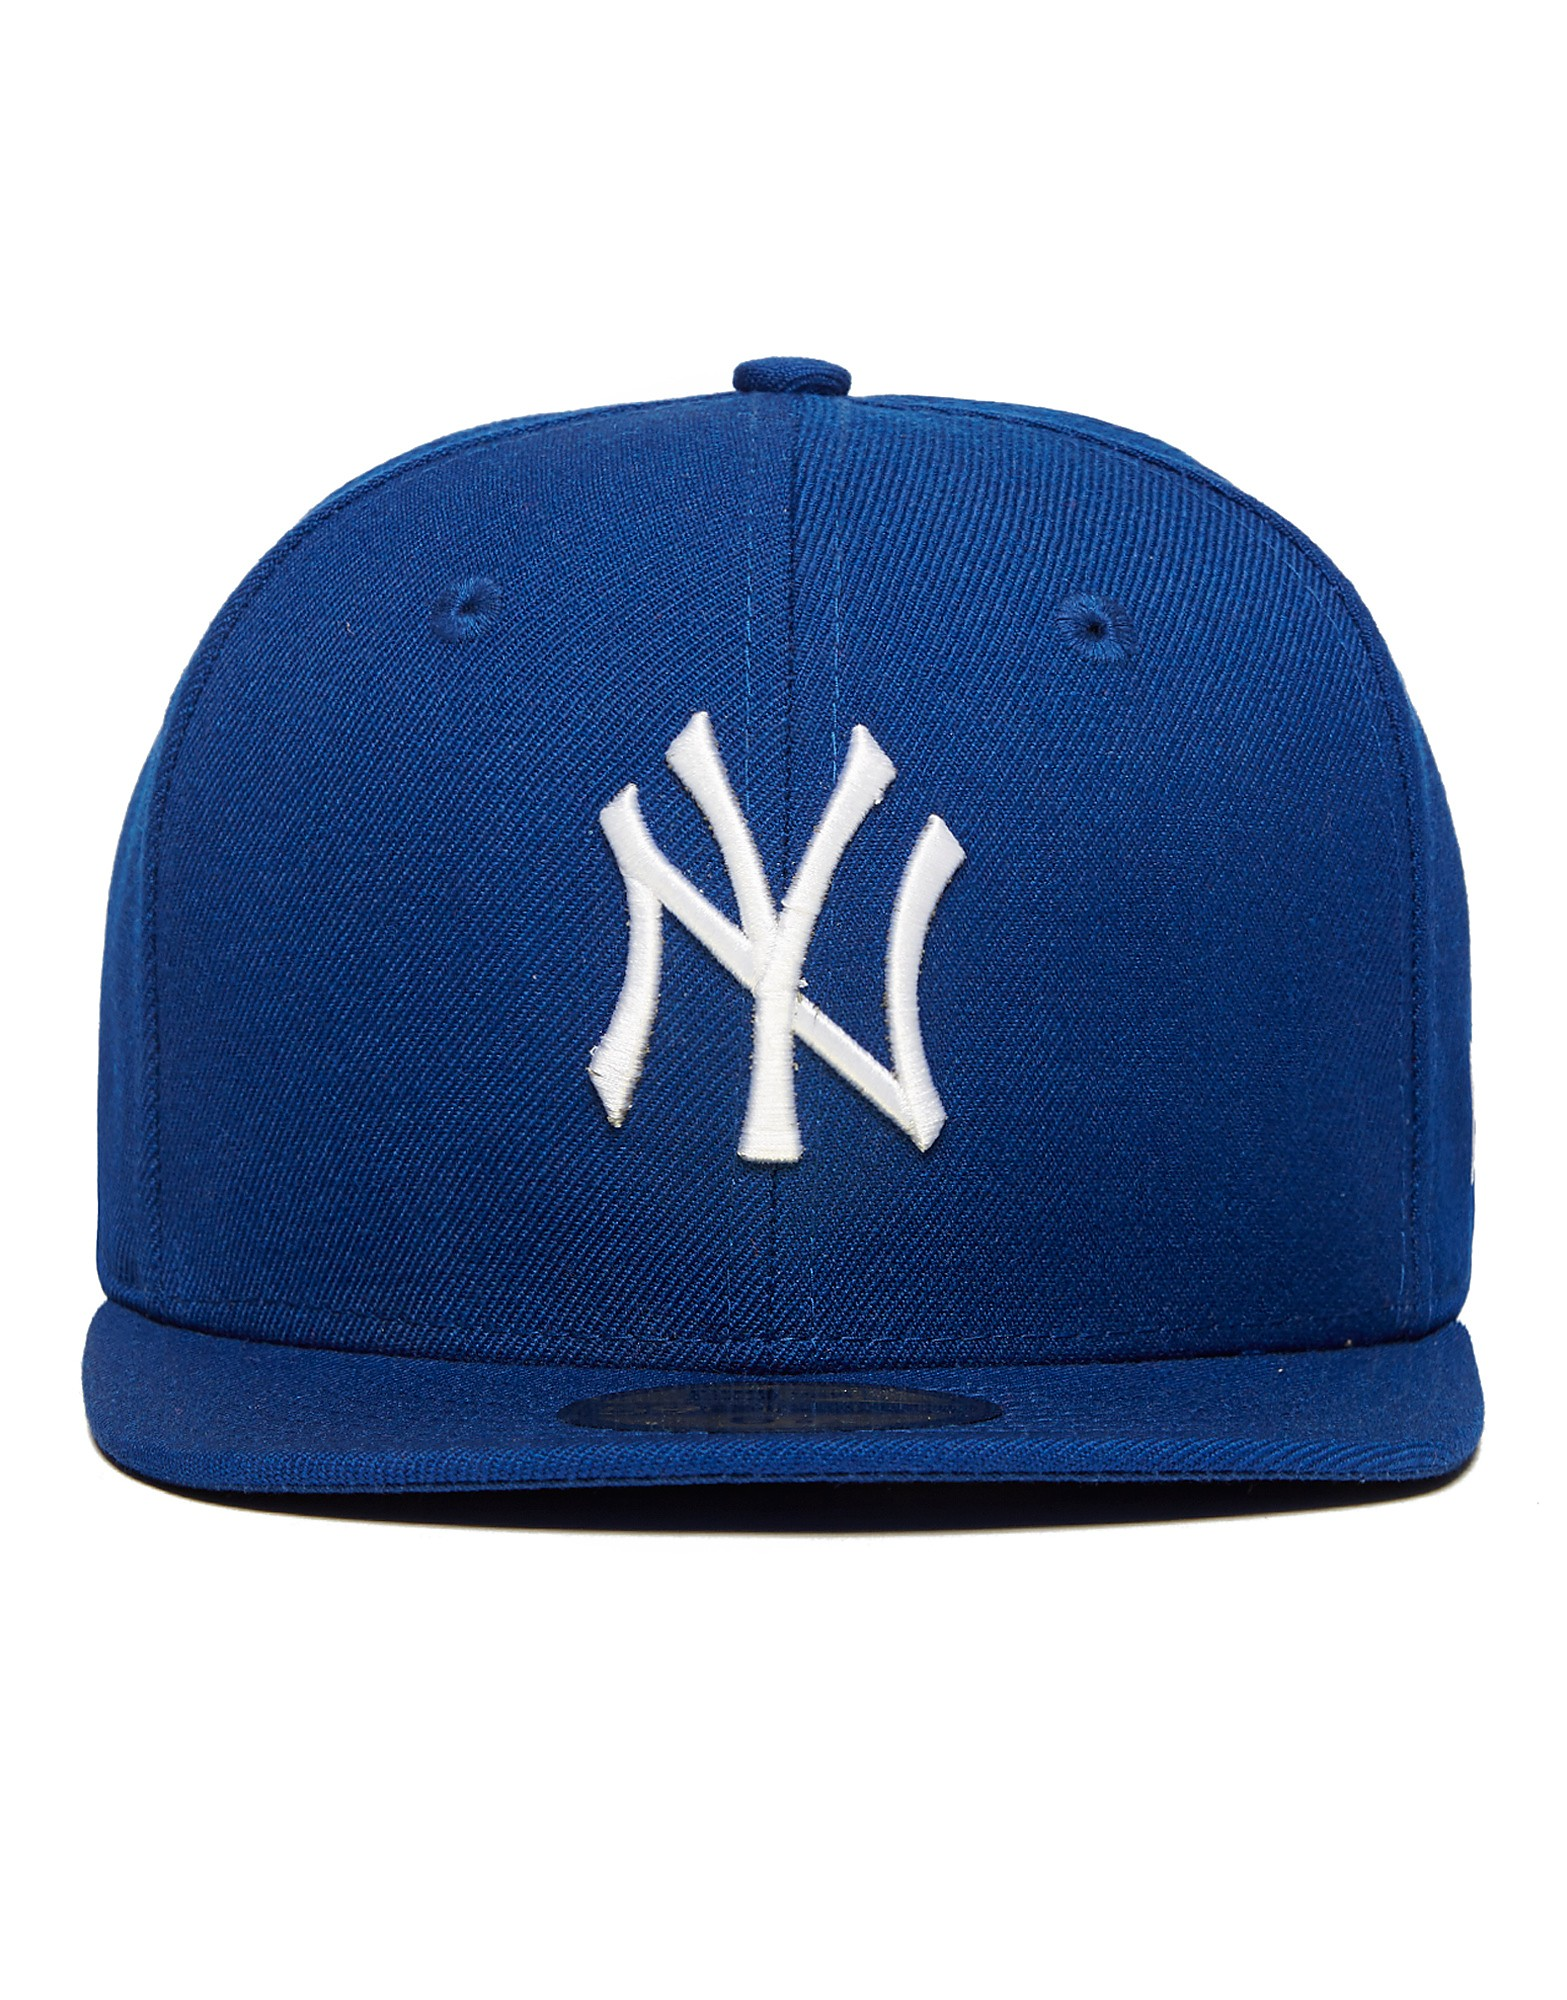 New Era Cappellino aderente MLB New York Yankees 59FIFTY